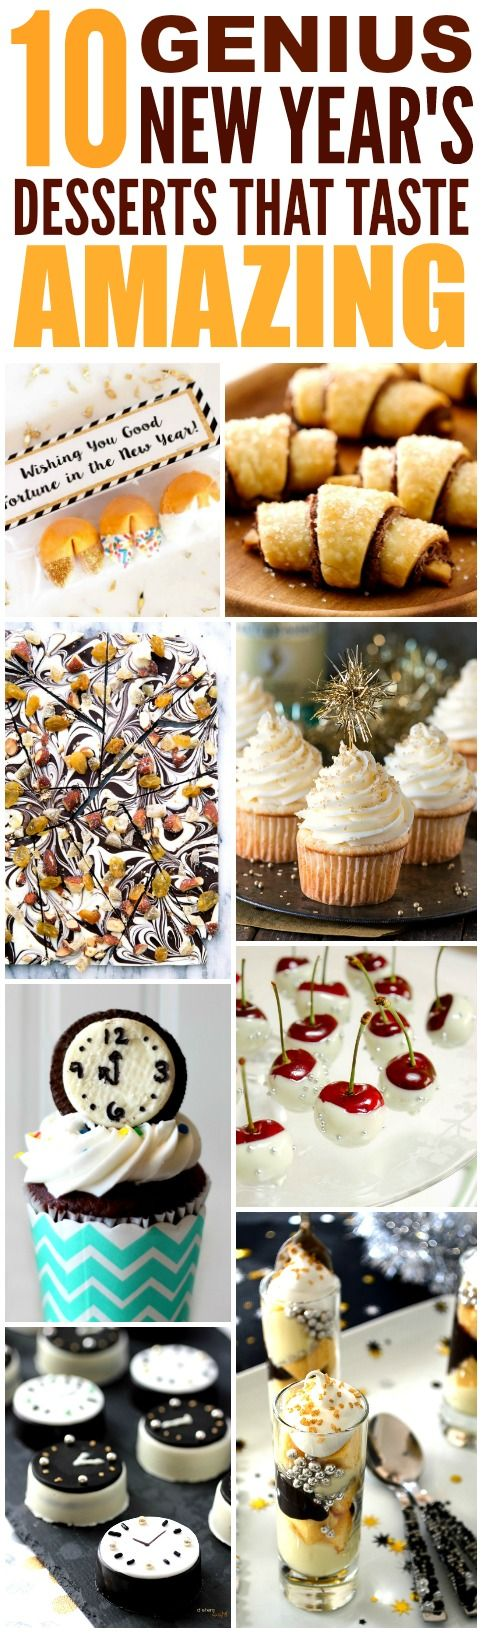 These 10 Easy and Delicious New Year's Dessert Ideas are THE BEST! I'm so HAPPY I found these GREAT recipes! Now I know what I'll make for the holidays! Definitely pinning!